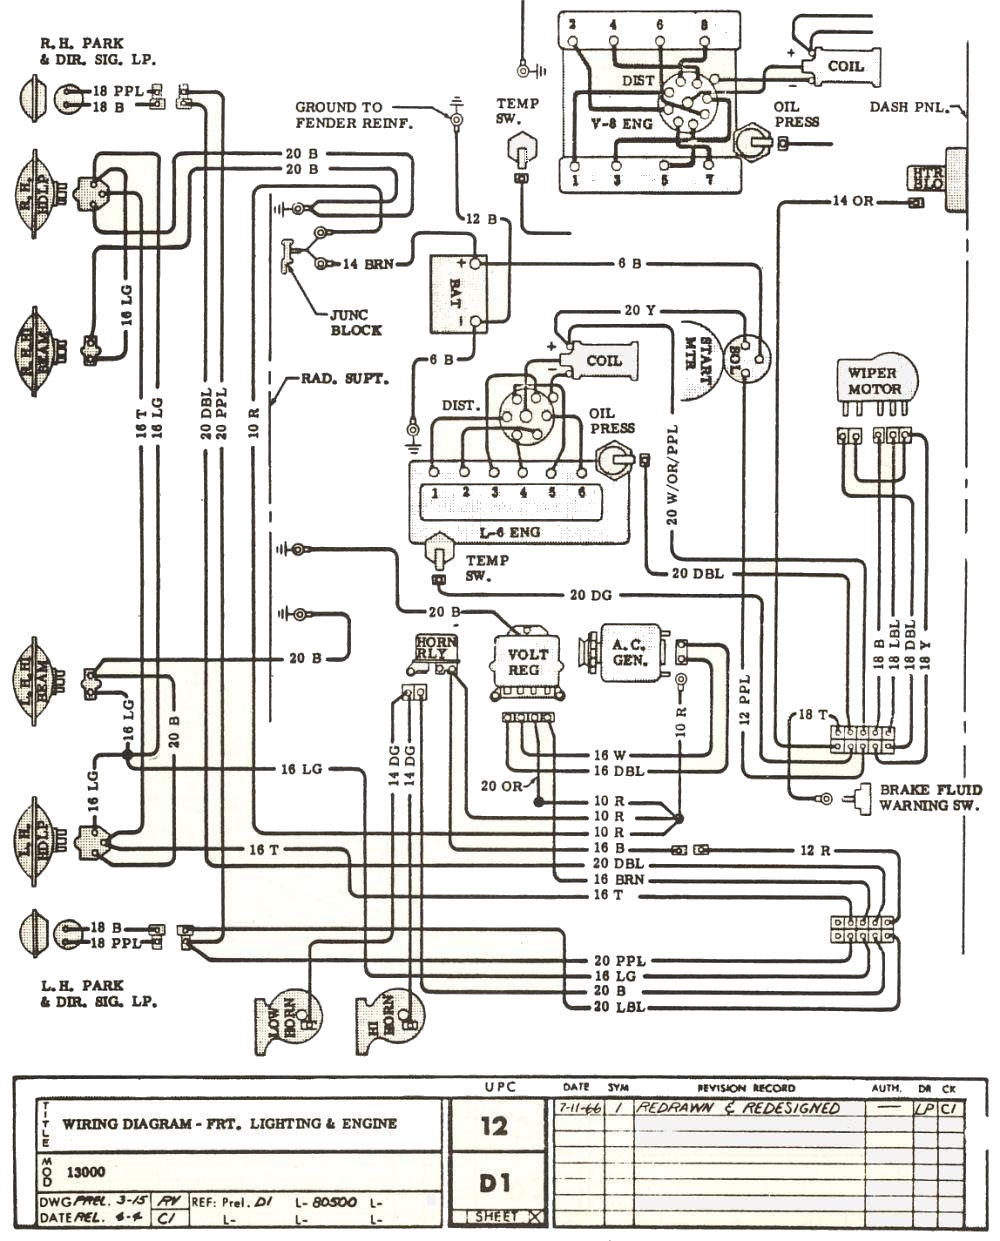 1966 Chevelle Wiring Diagram from macswebs.com